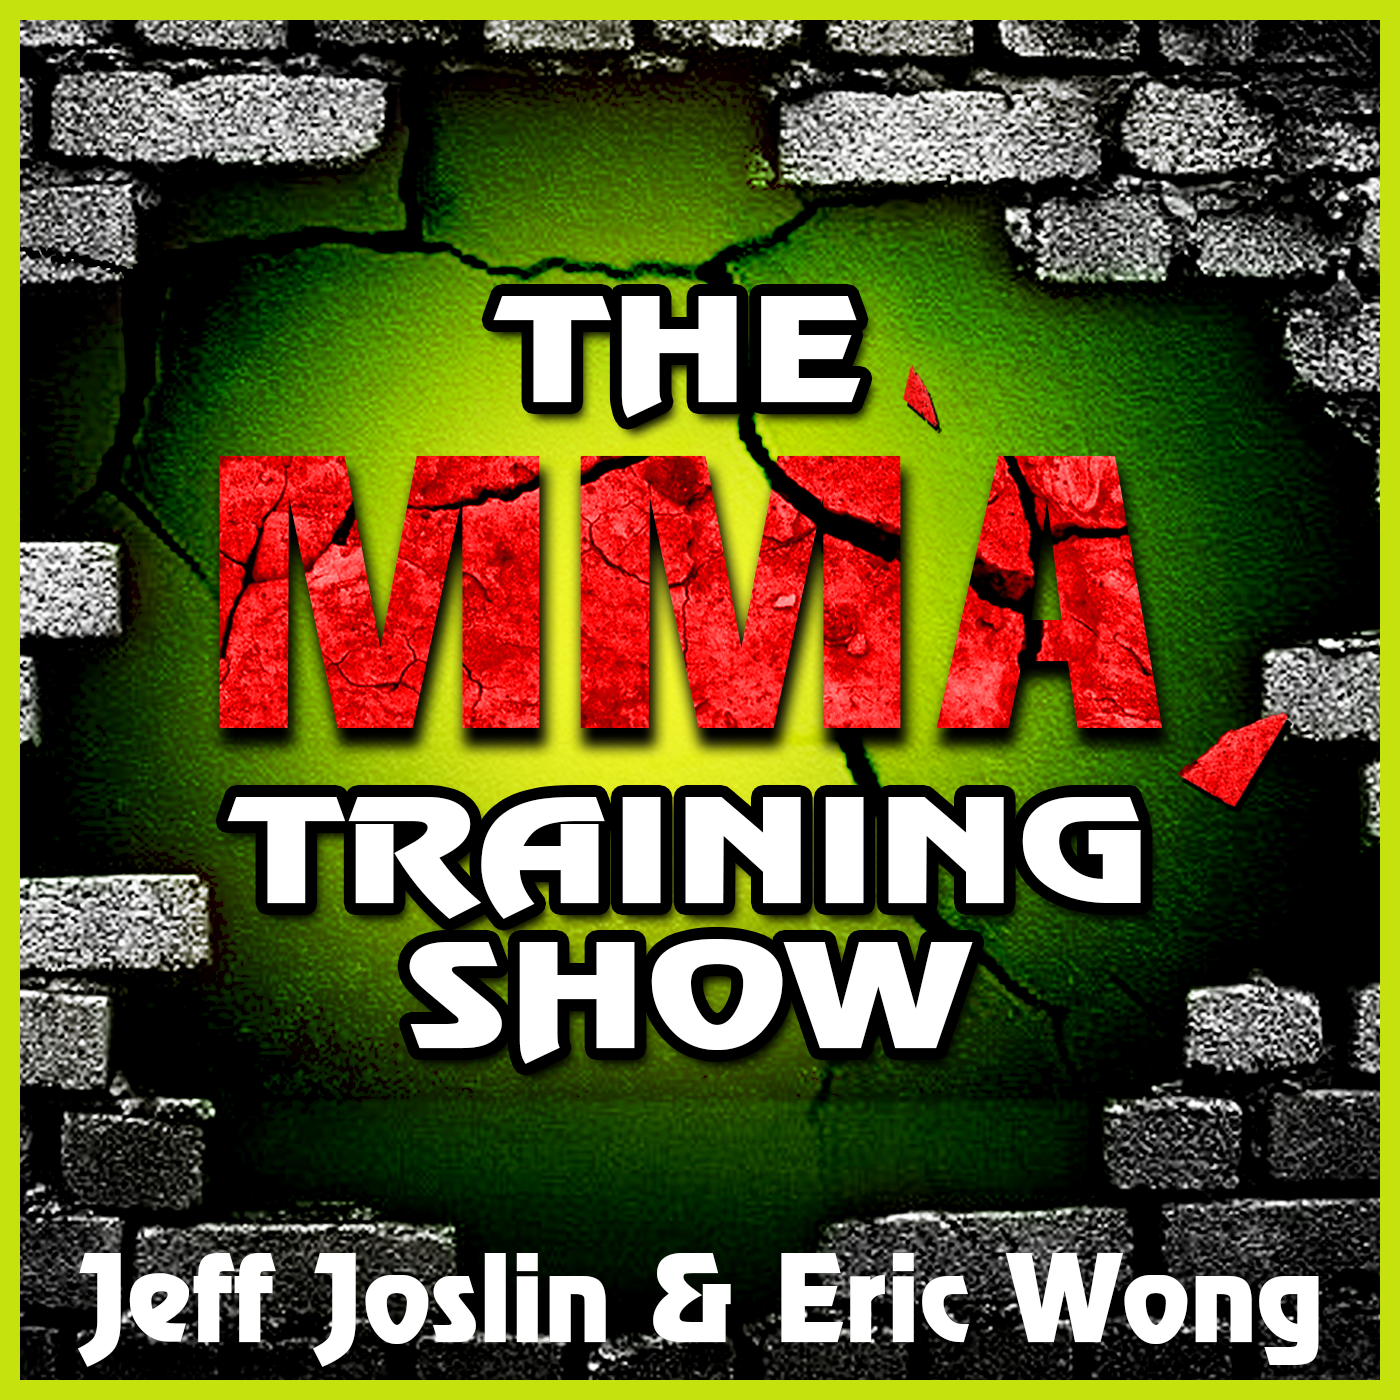 The MMA Training Show: Fitness | Fighting | Mixed Martial Arts | Nutrition logo